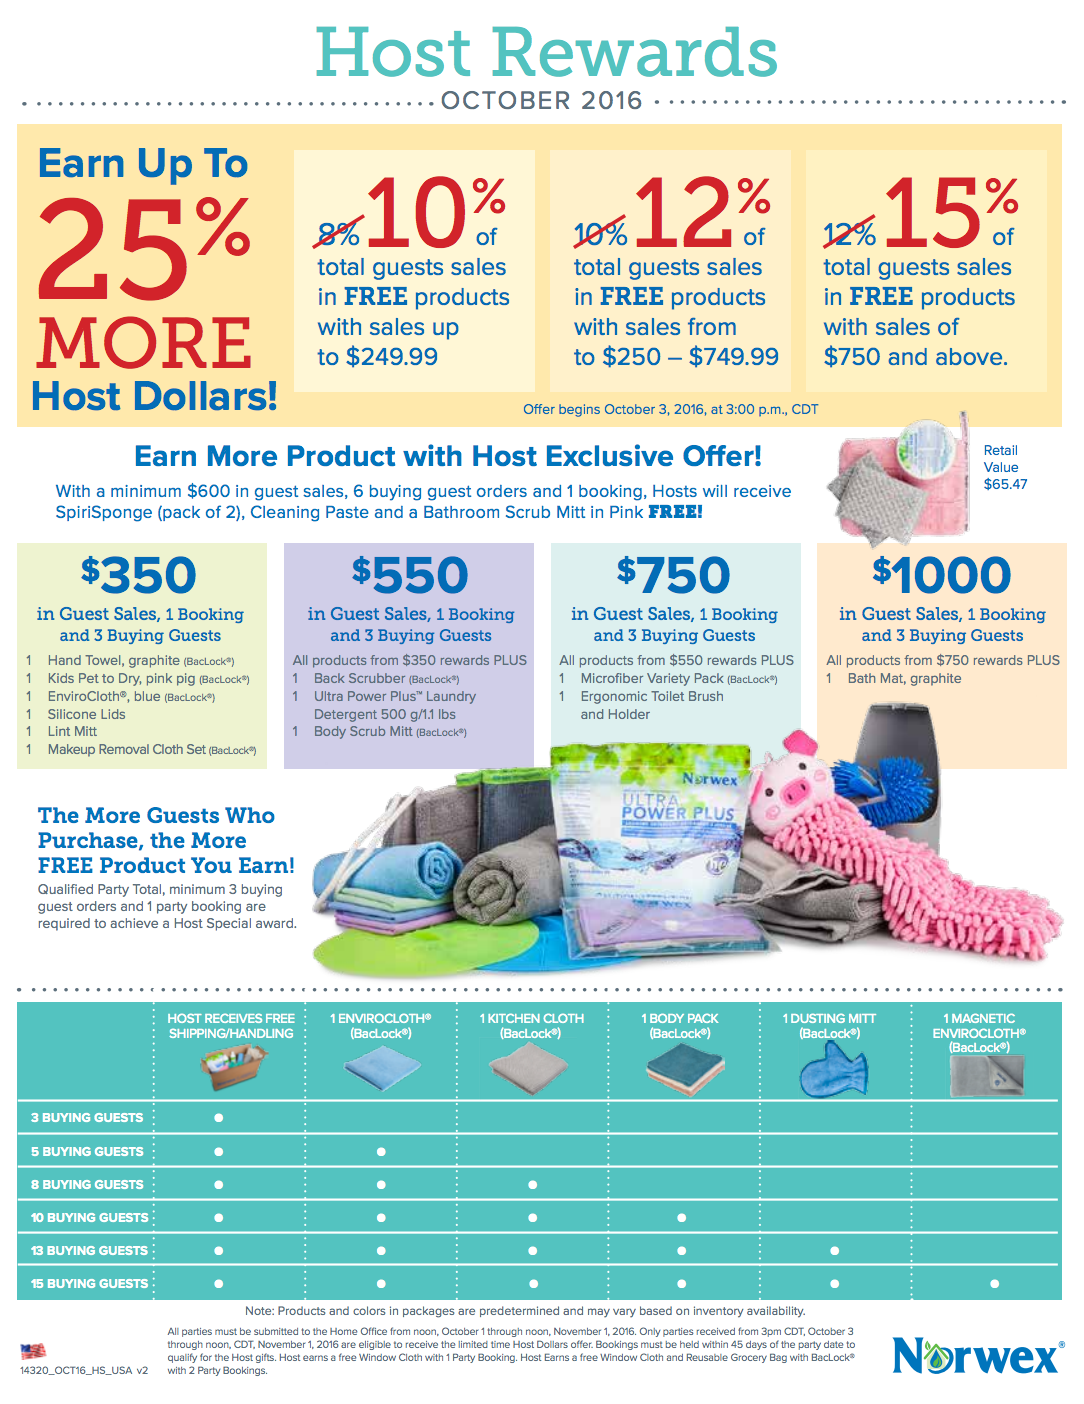 Norwex_Hostess_Benefit_Gifts_October